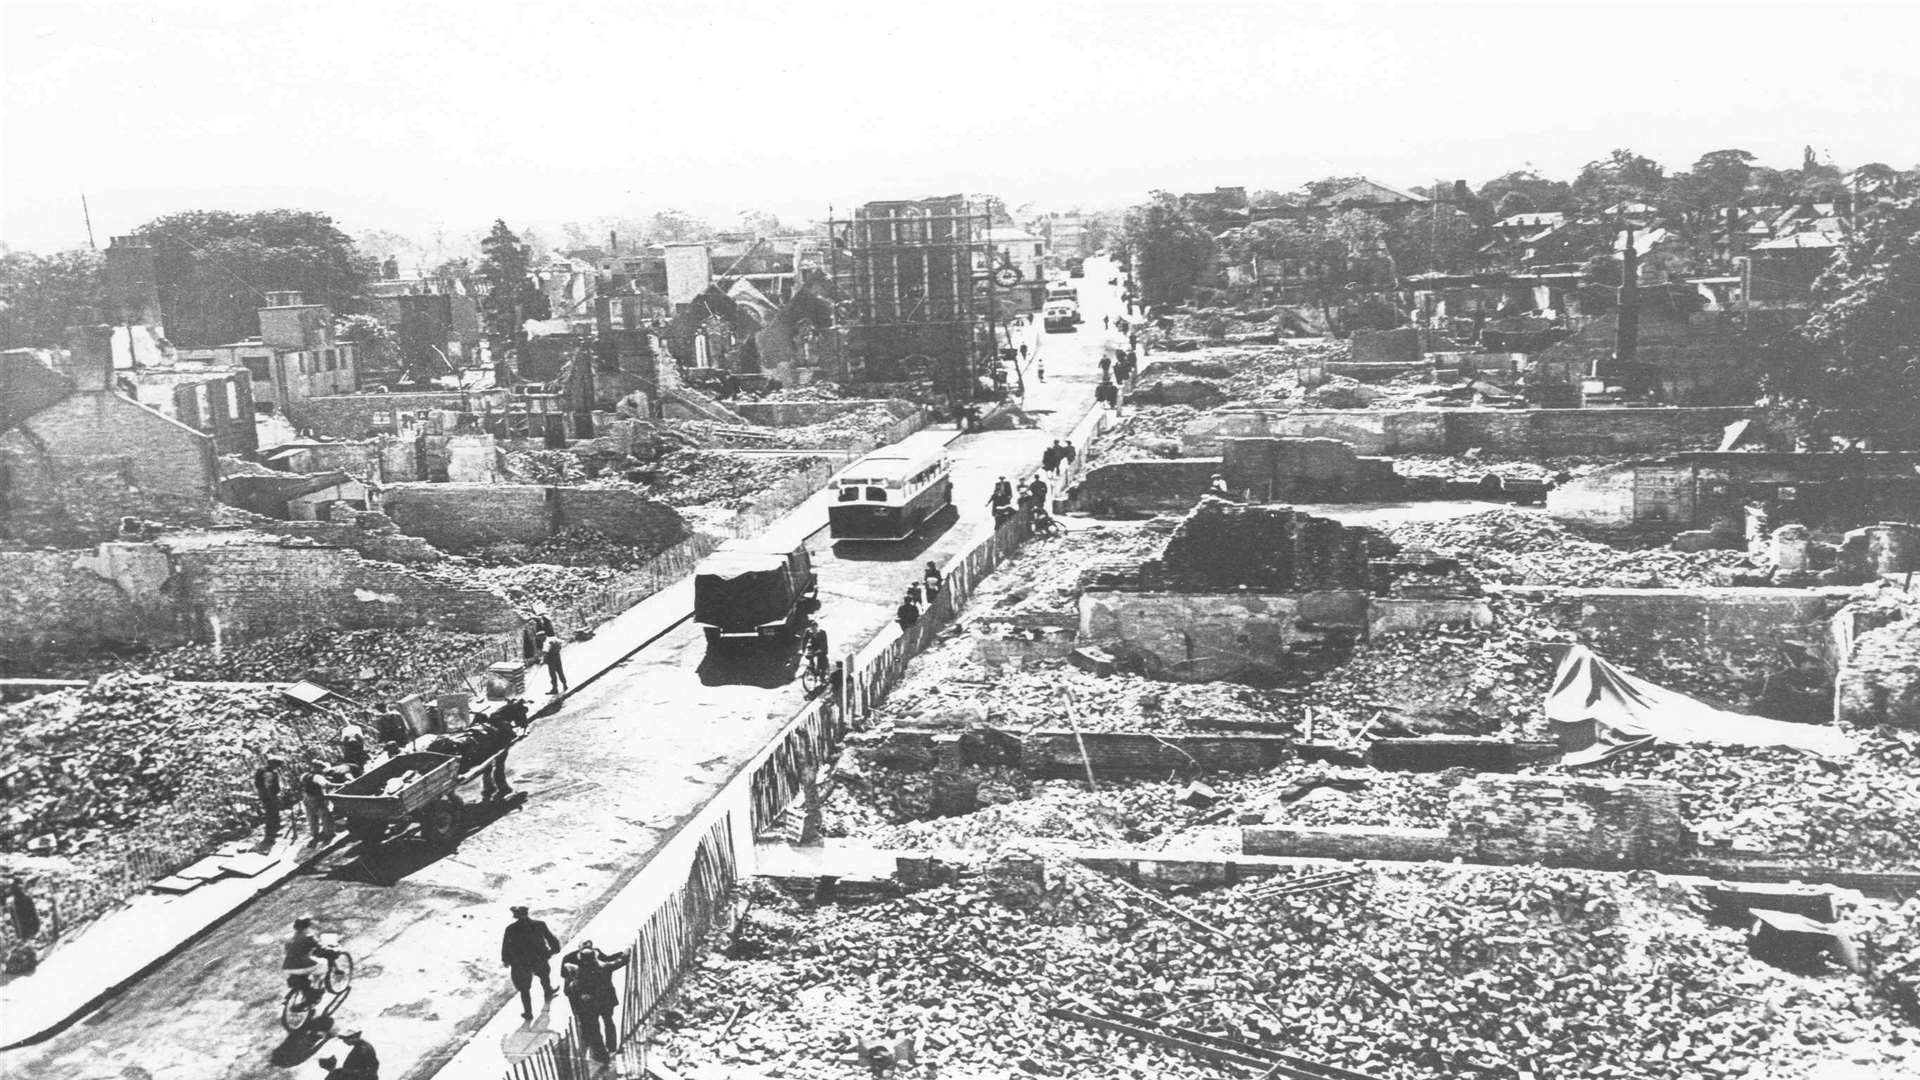 Homes ruined after 1942 blitz